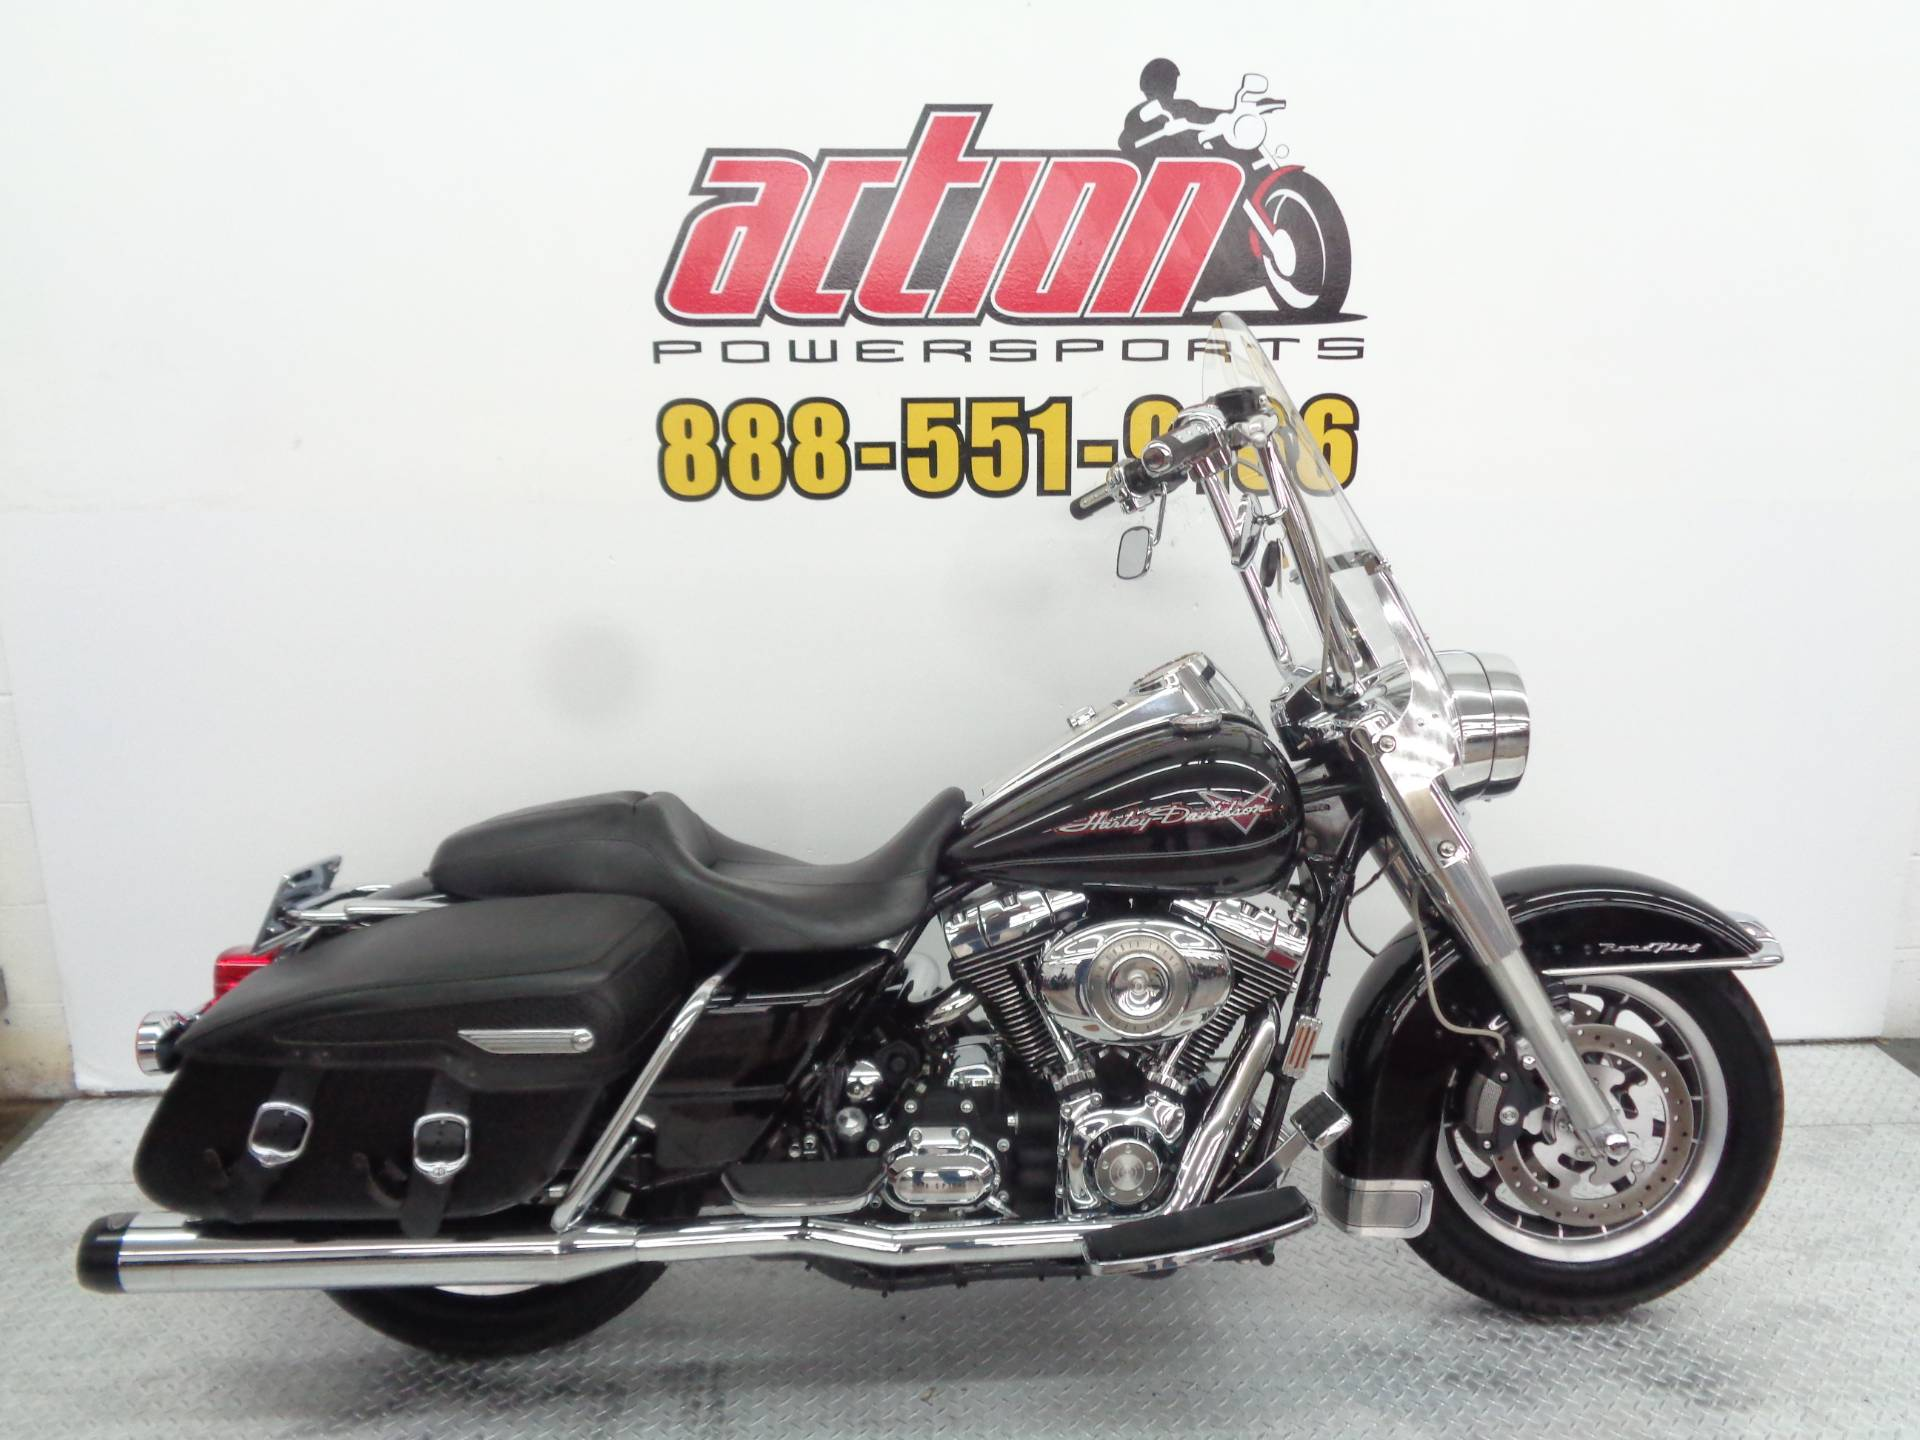 2008 Harley-Davidson Road King Classic for sale 6202